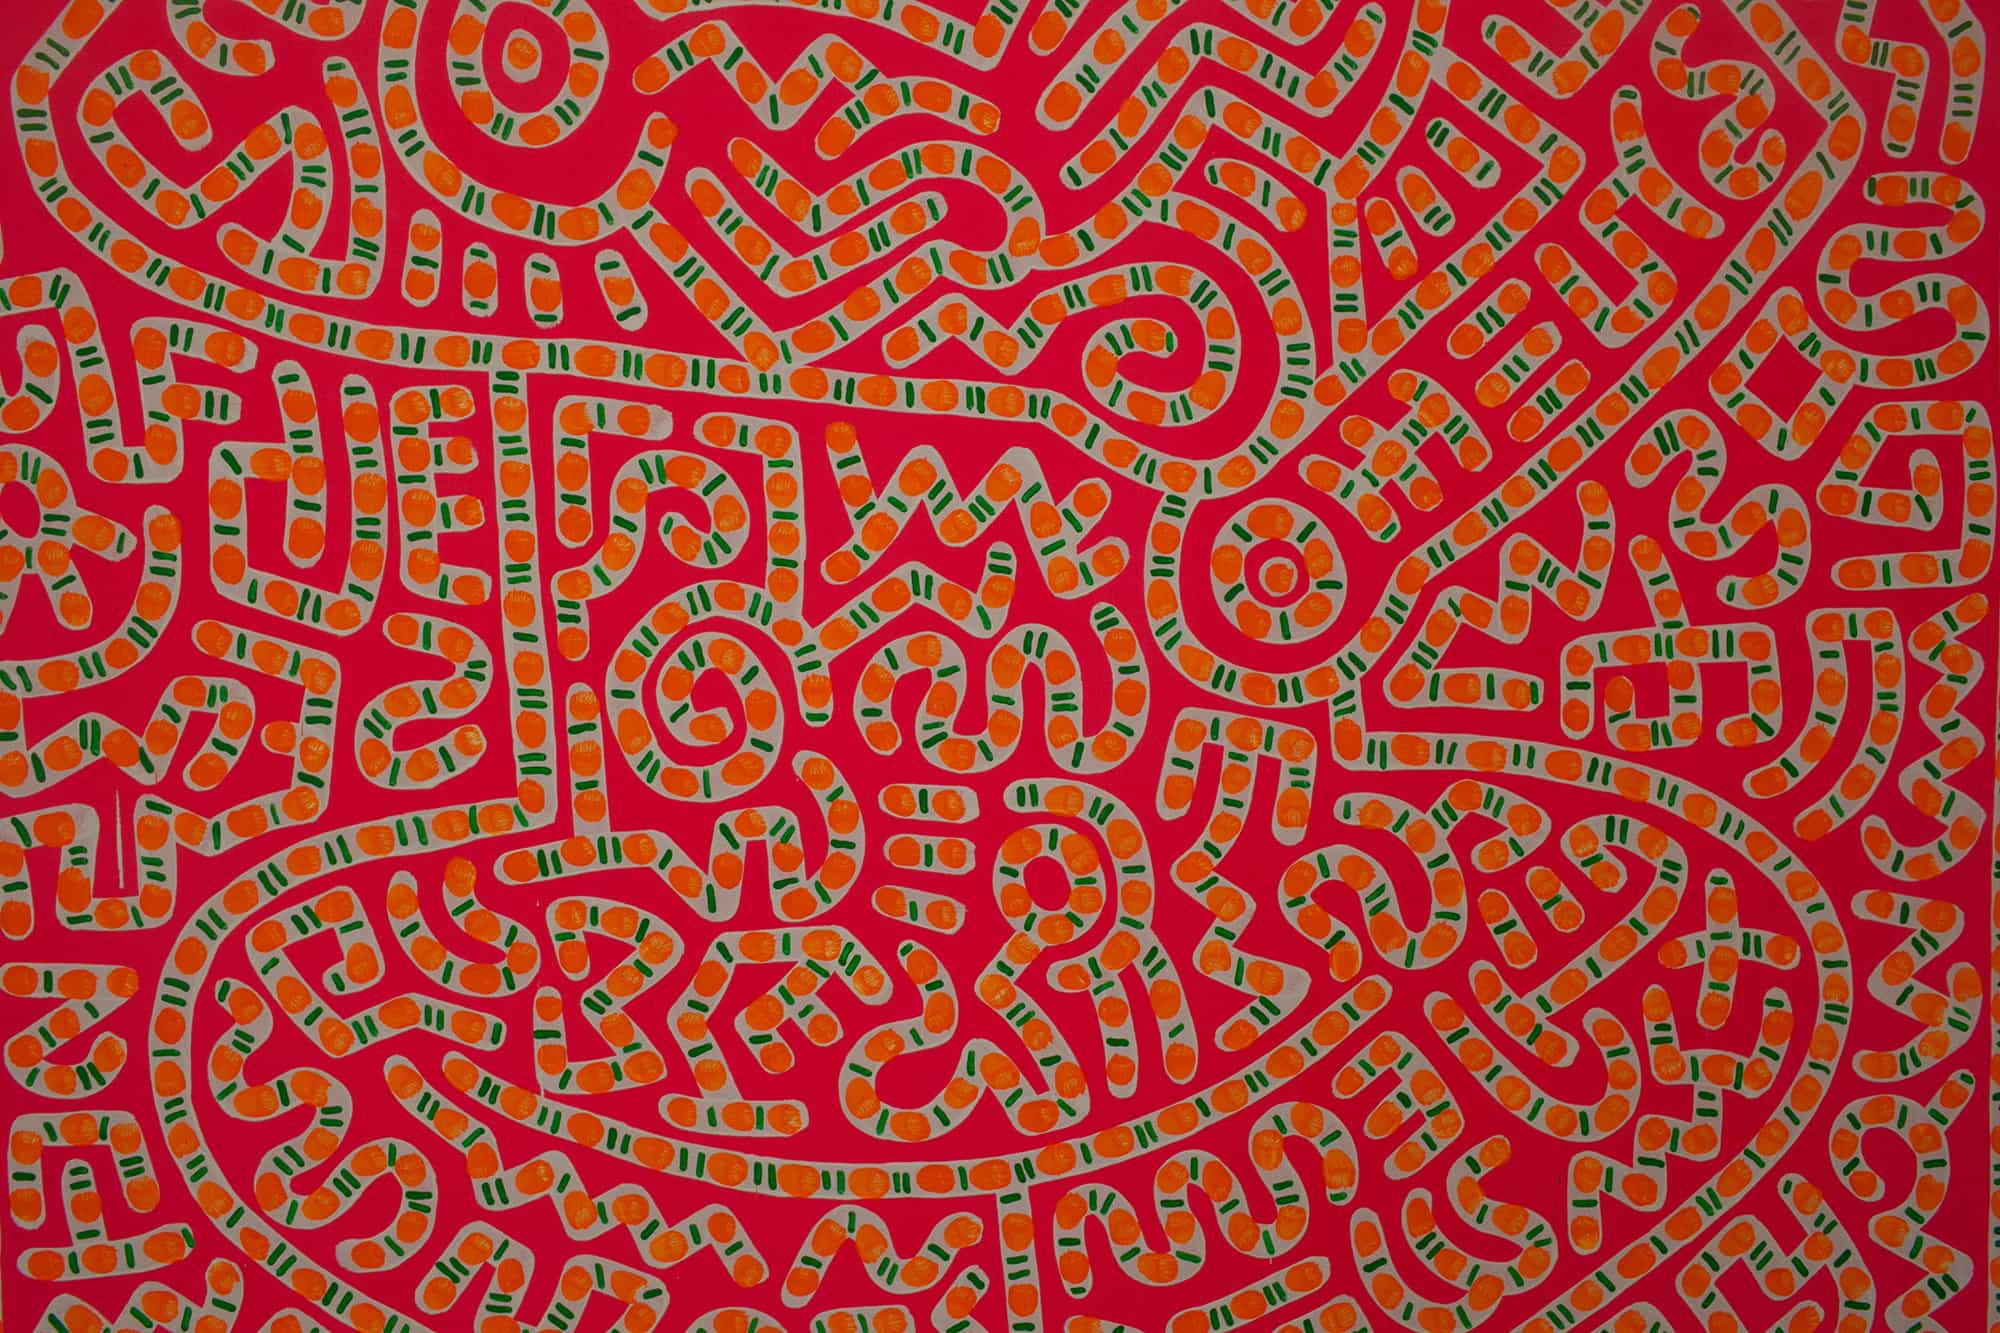 Hamburger Bahnhof contemporary art museum in Berlin, Germany. Keith Haring painting